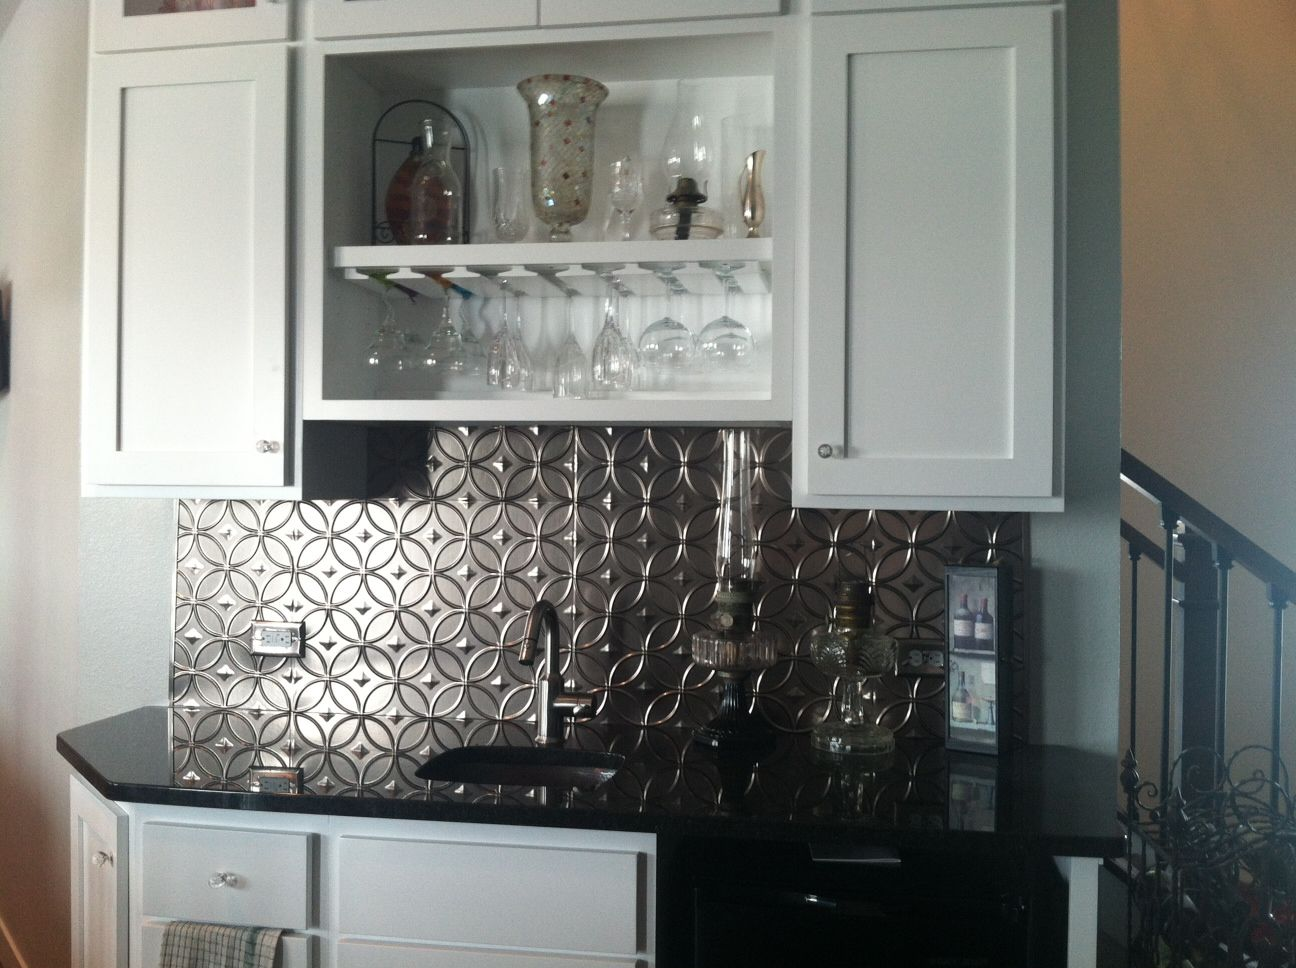 - Chris Chose The Rings Style Fasade Backsplash Panels To Bring